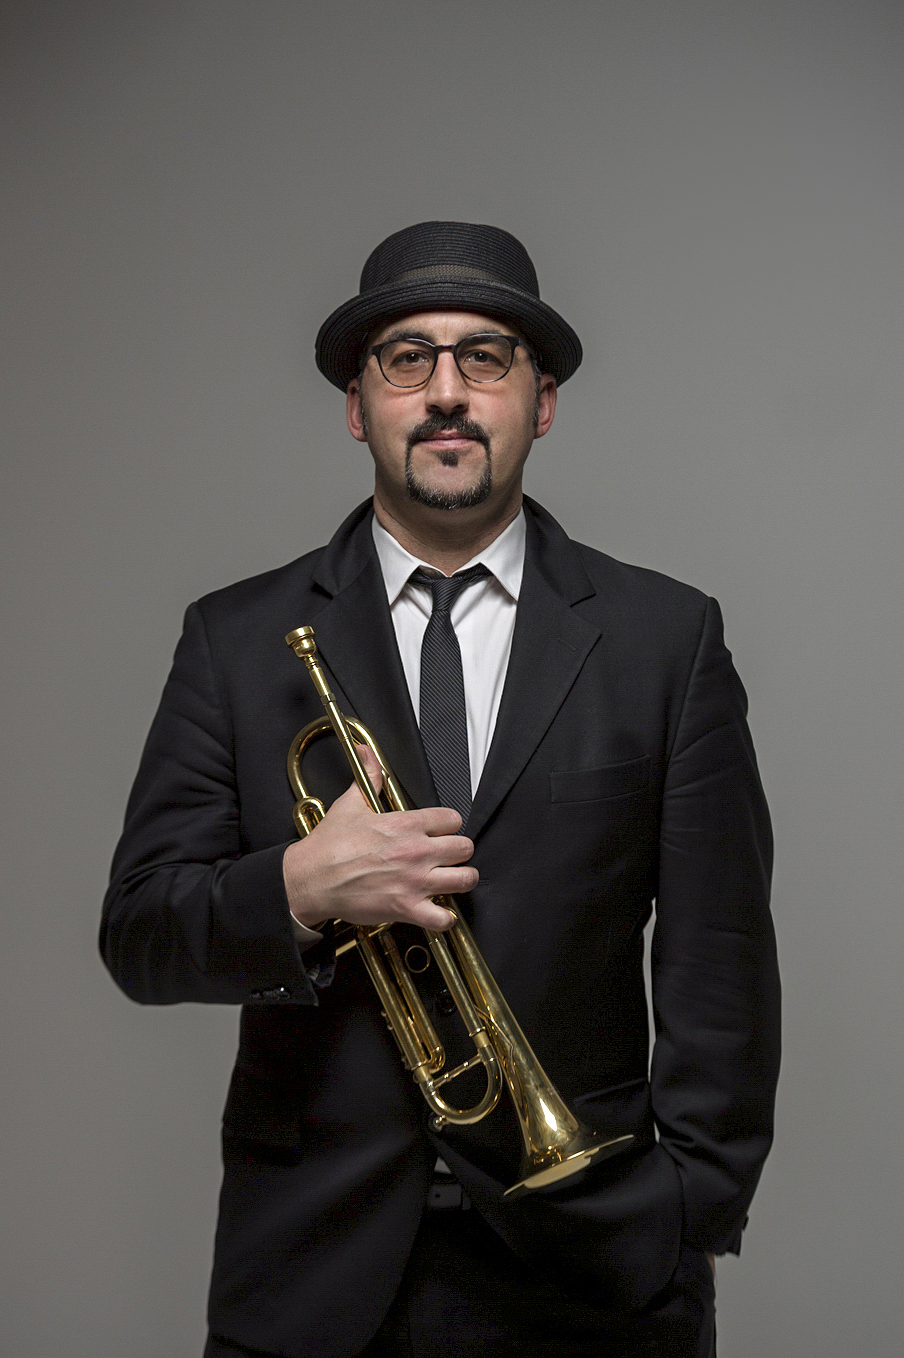 Jon-Paul Frappier - Trumpet